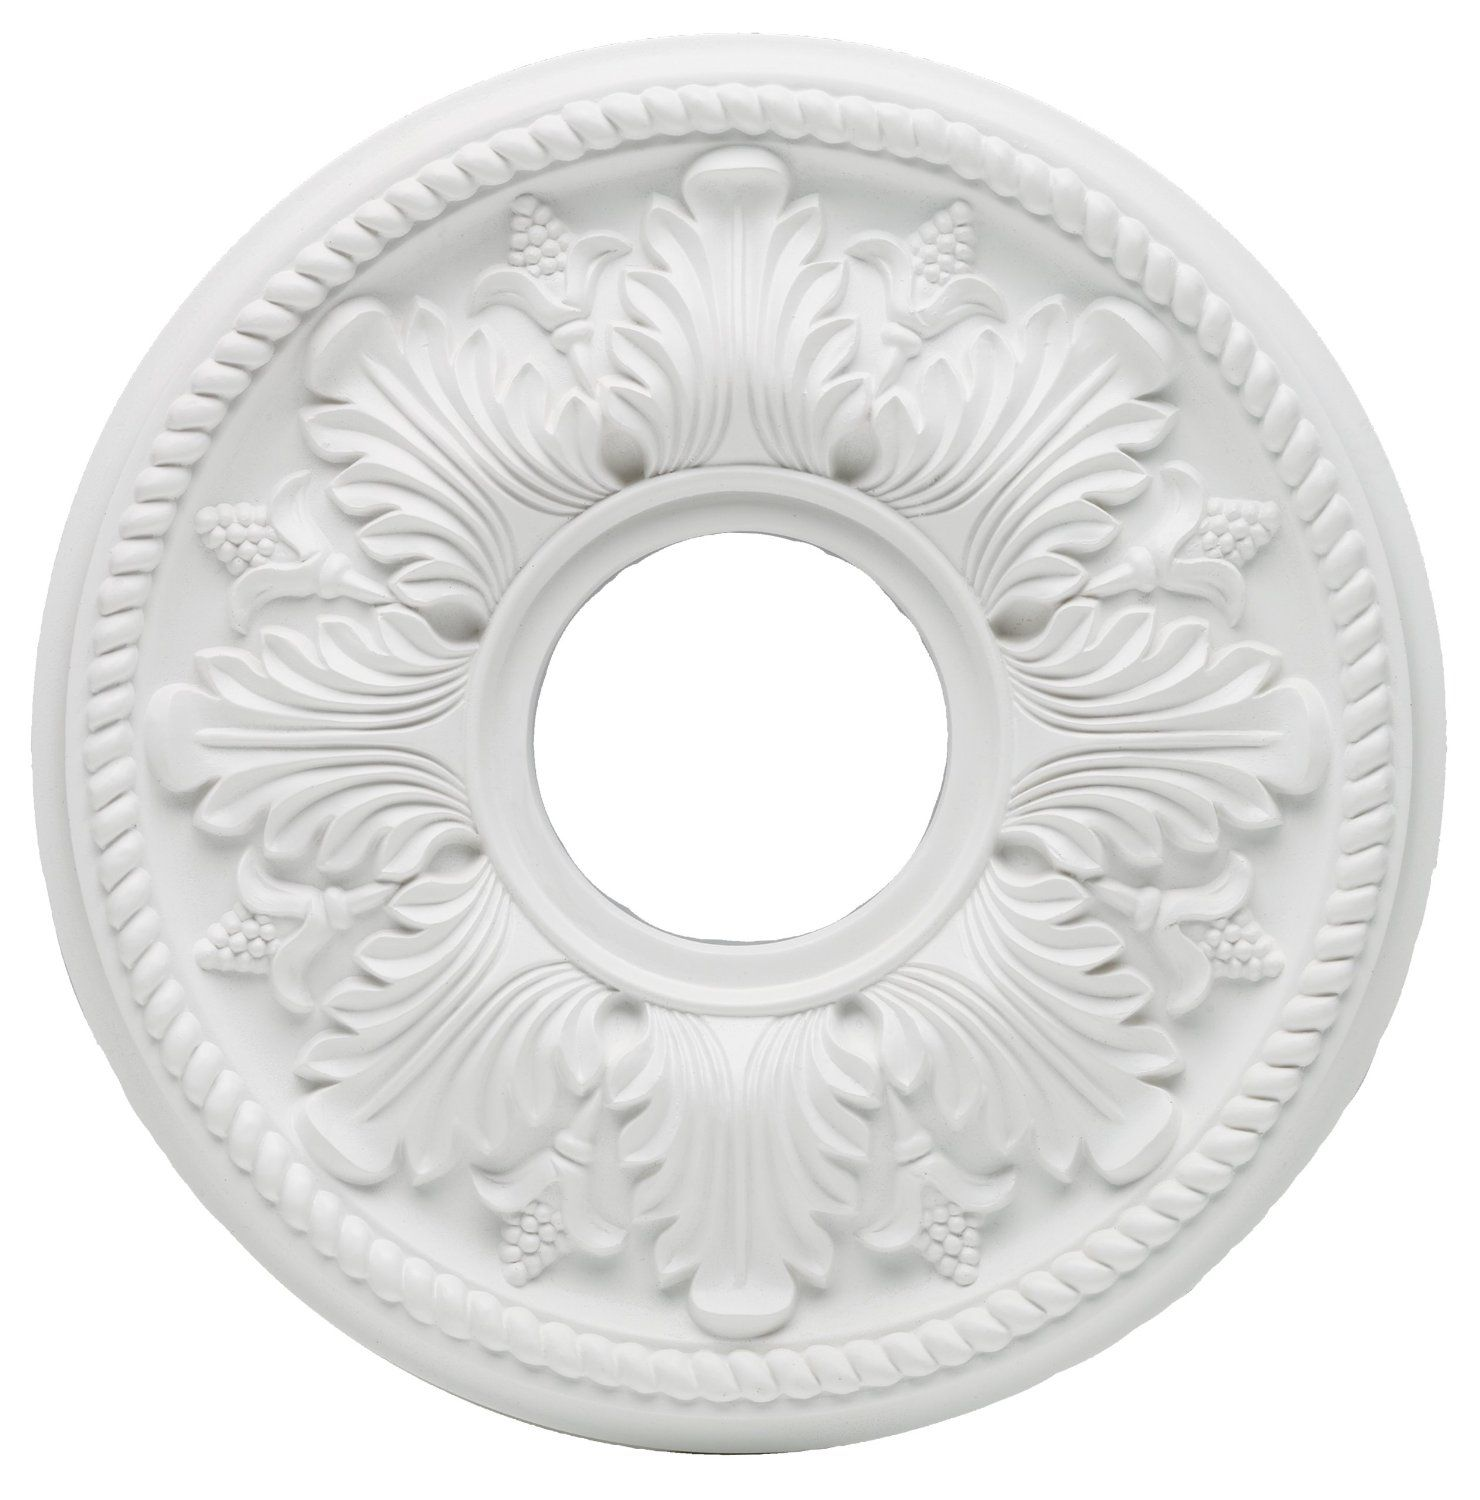 ceiling plate for ceiling fan - Google Search | Home - Decor Misc ...